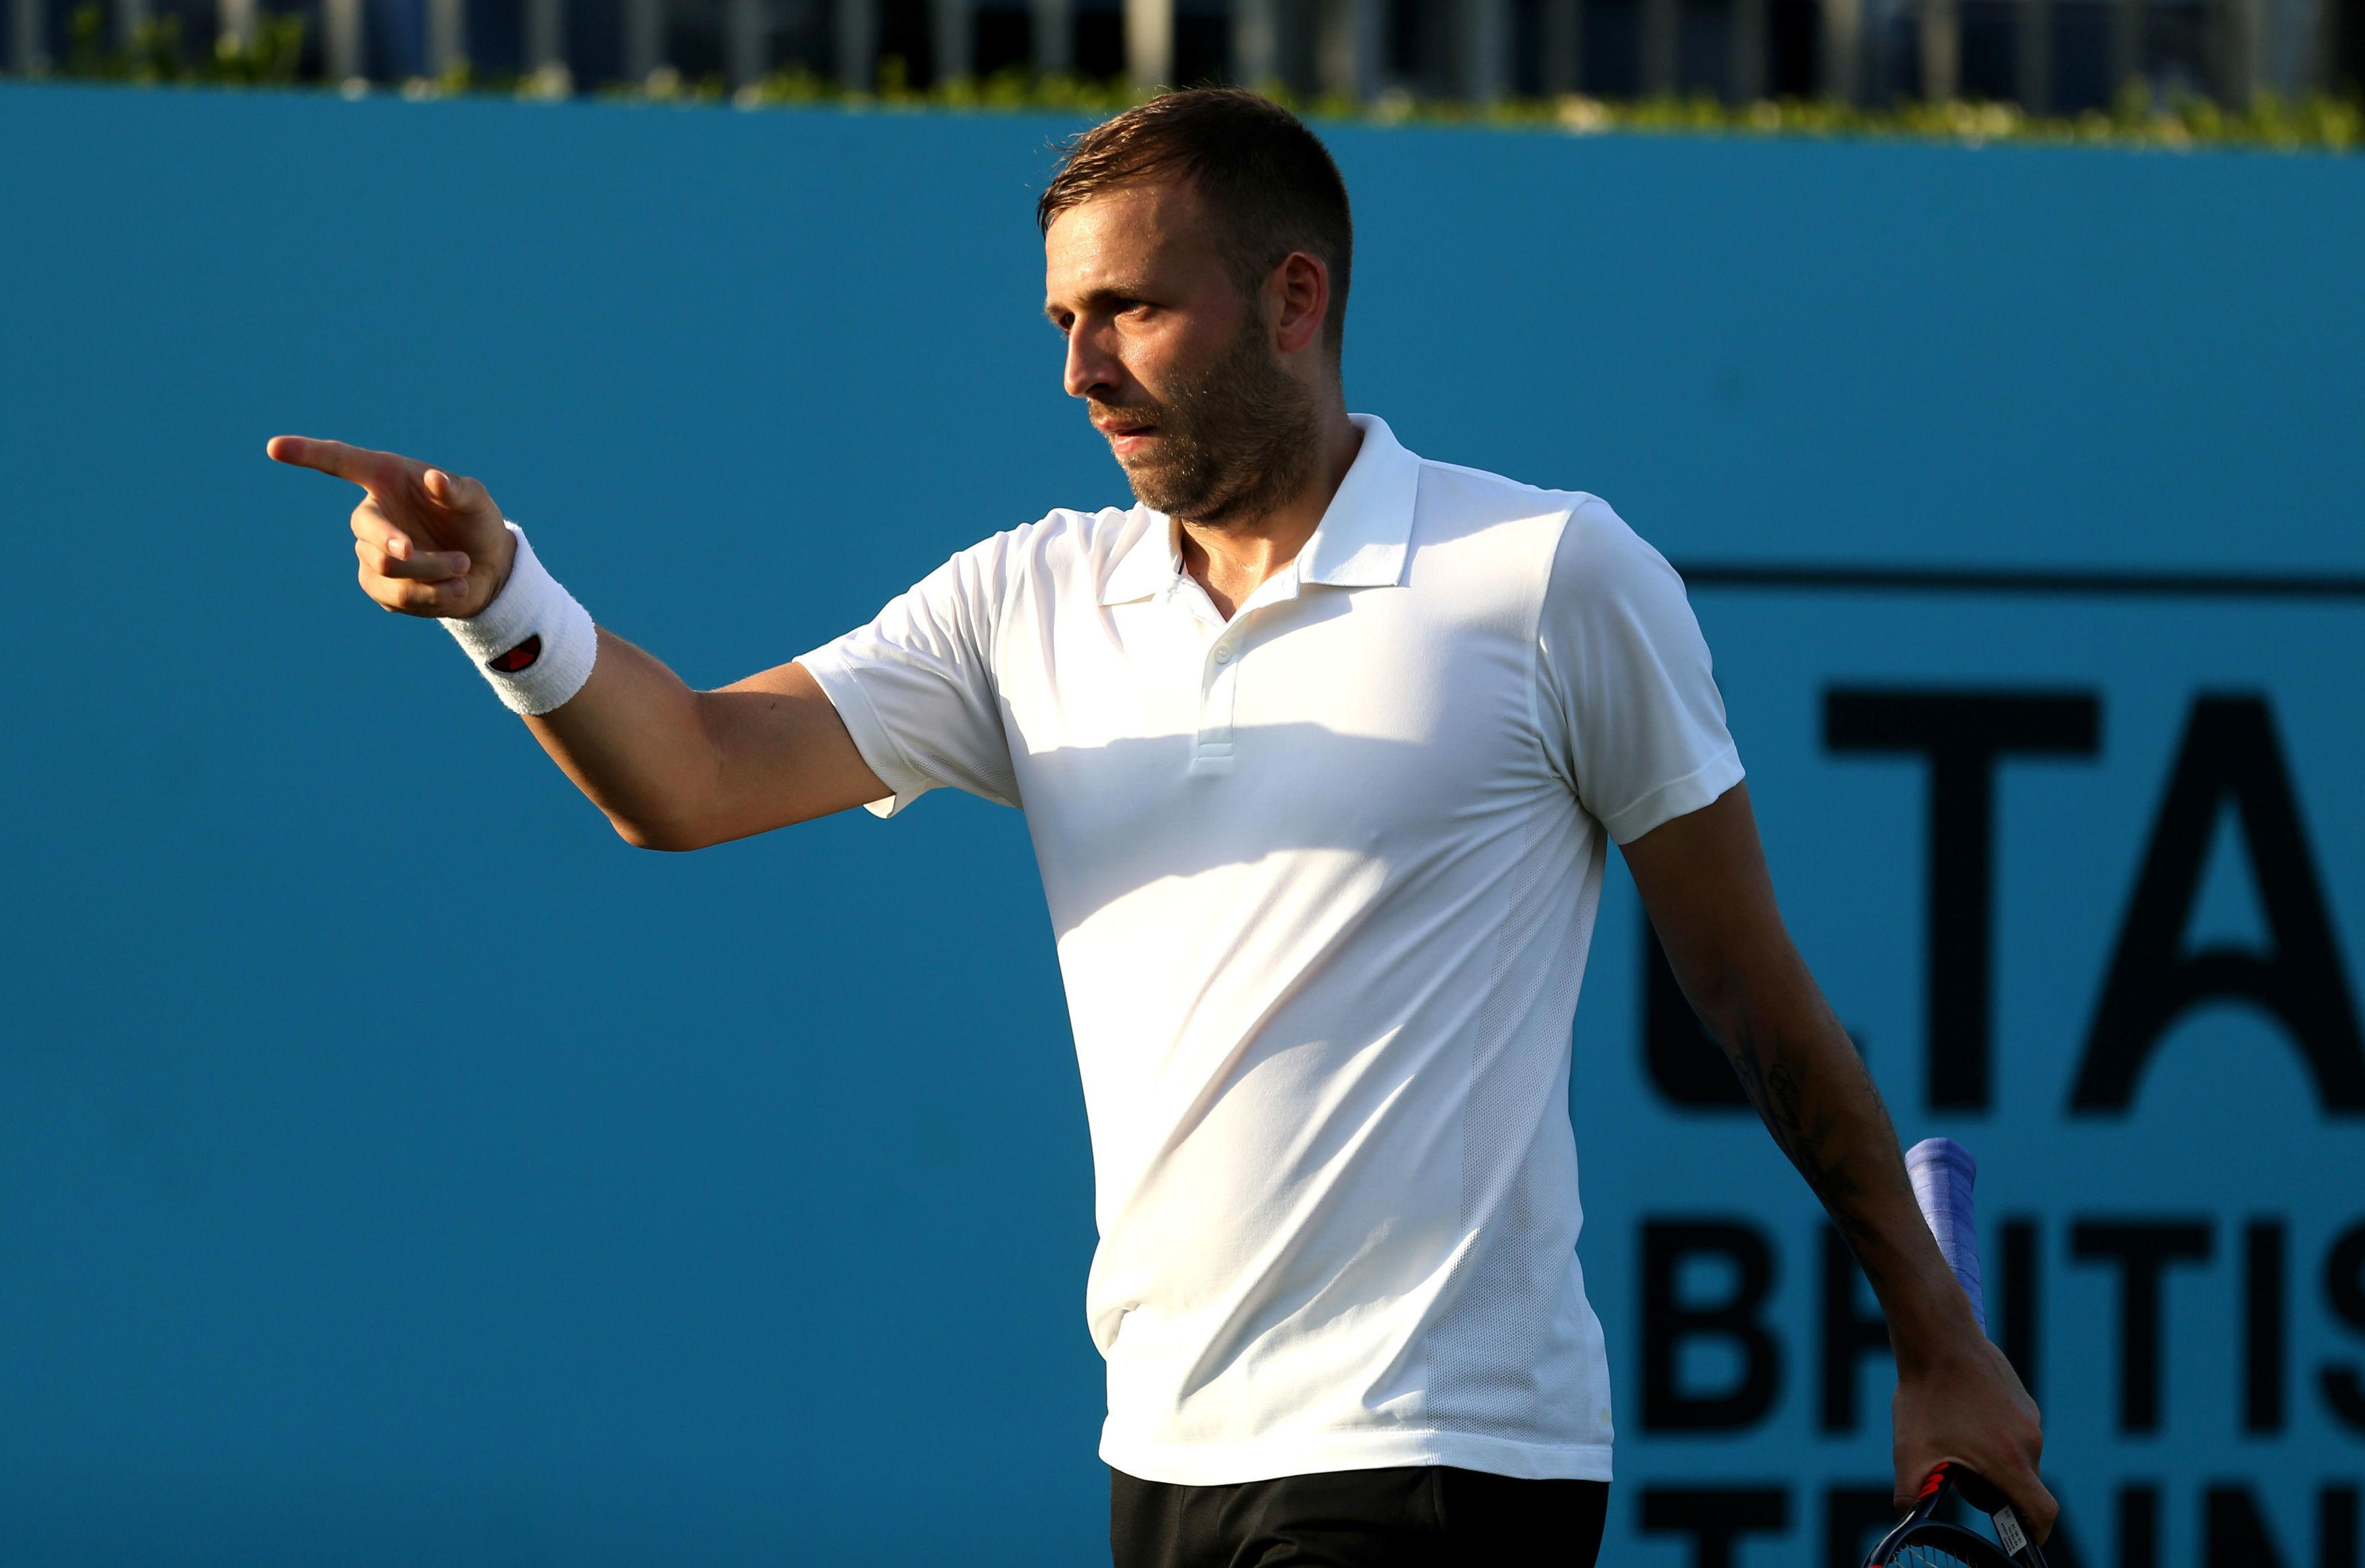 Dan Evans is hoping to make his Great Britain return in the Davis Cup